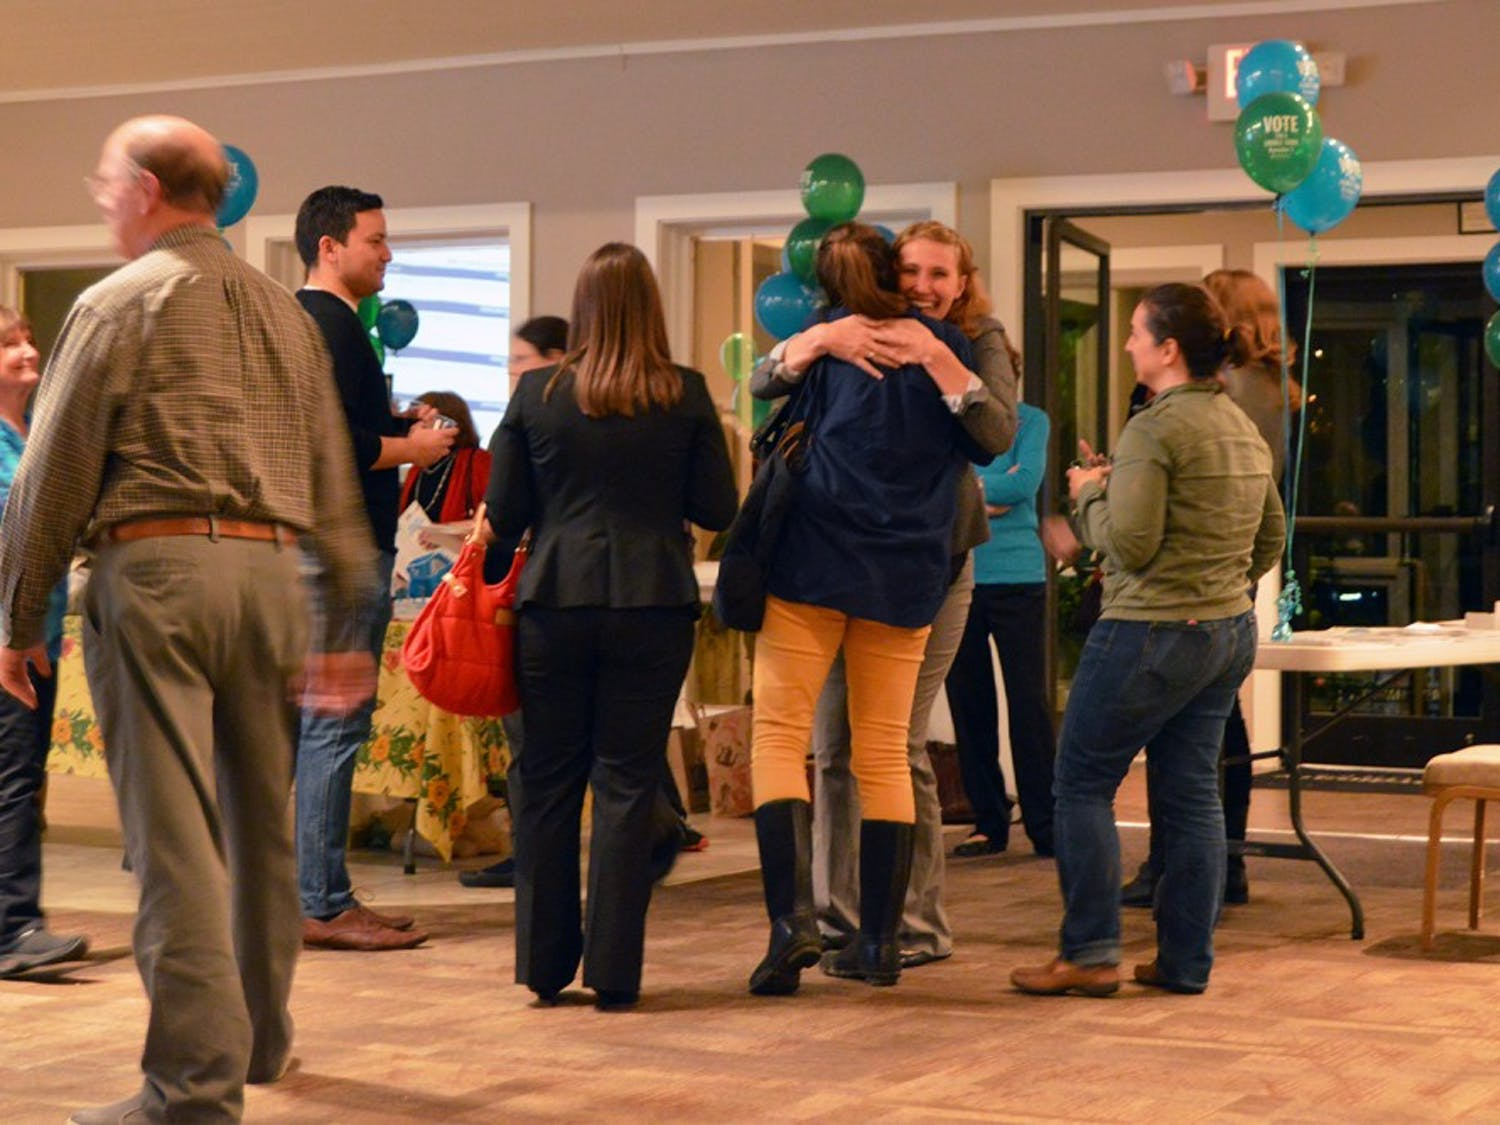 Jessica Anderson hugs a friend after being elected Town Council at the CHALT election party.